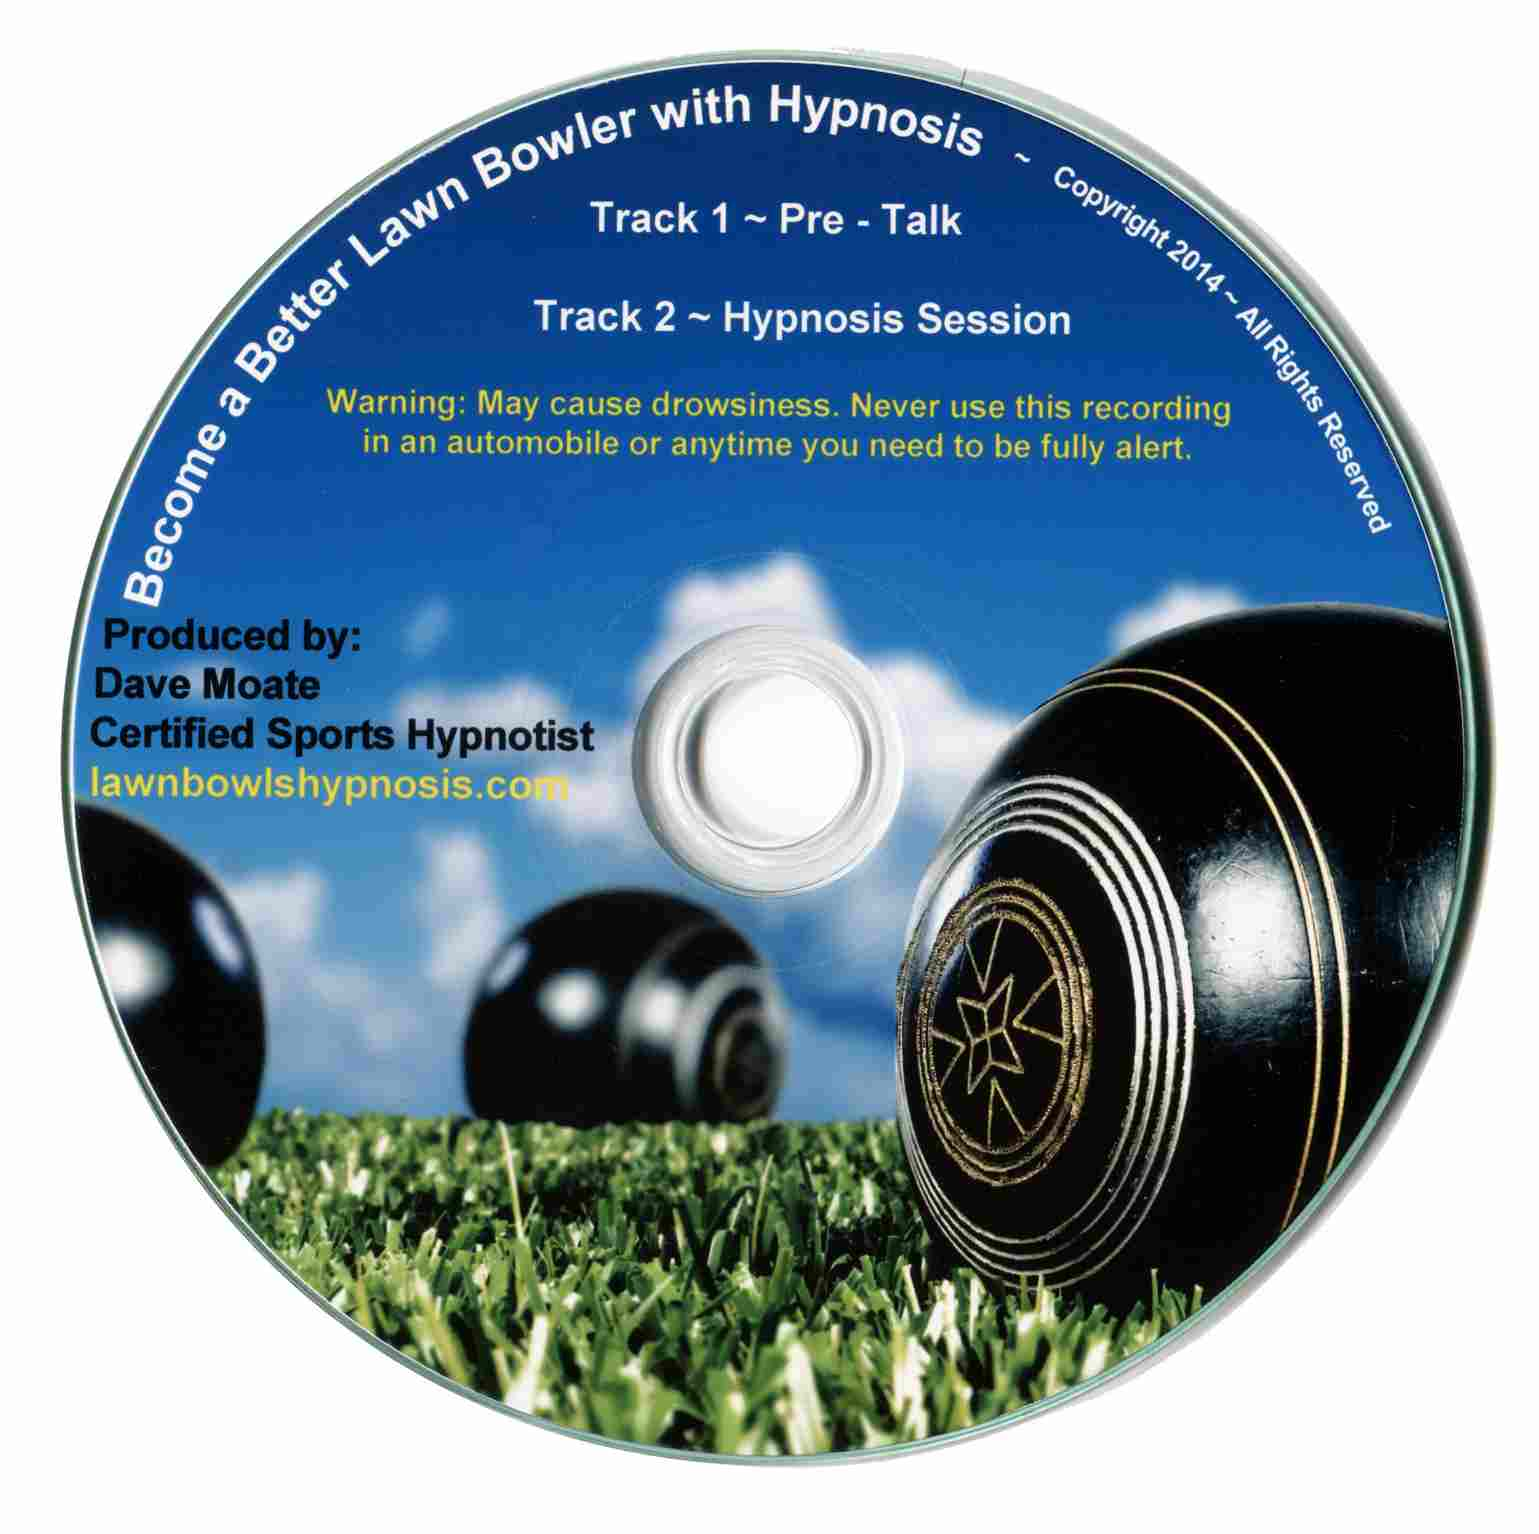 Details about THE BEST COACHING LAWN BOWLING HYPNOSIS CD AVAILABLE + BONUS  SET OF COASTERS